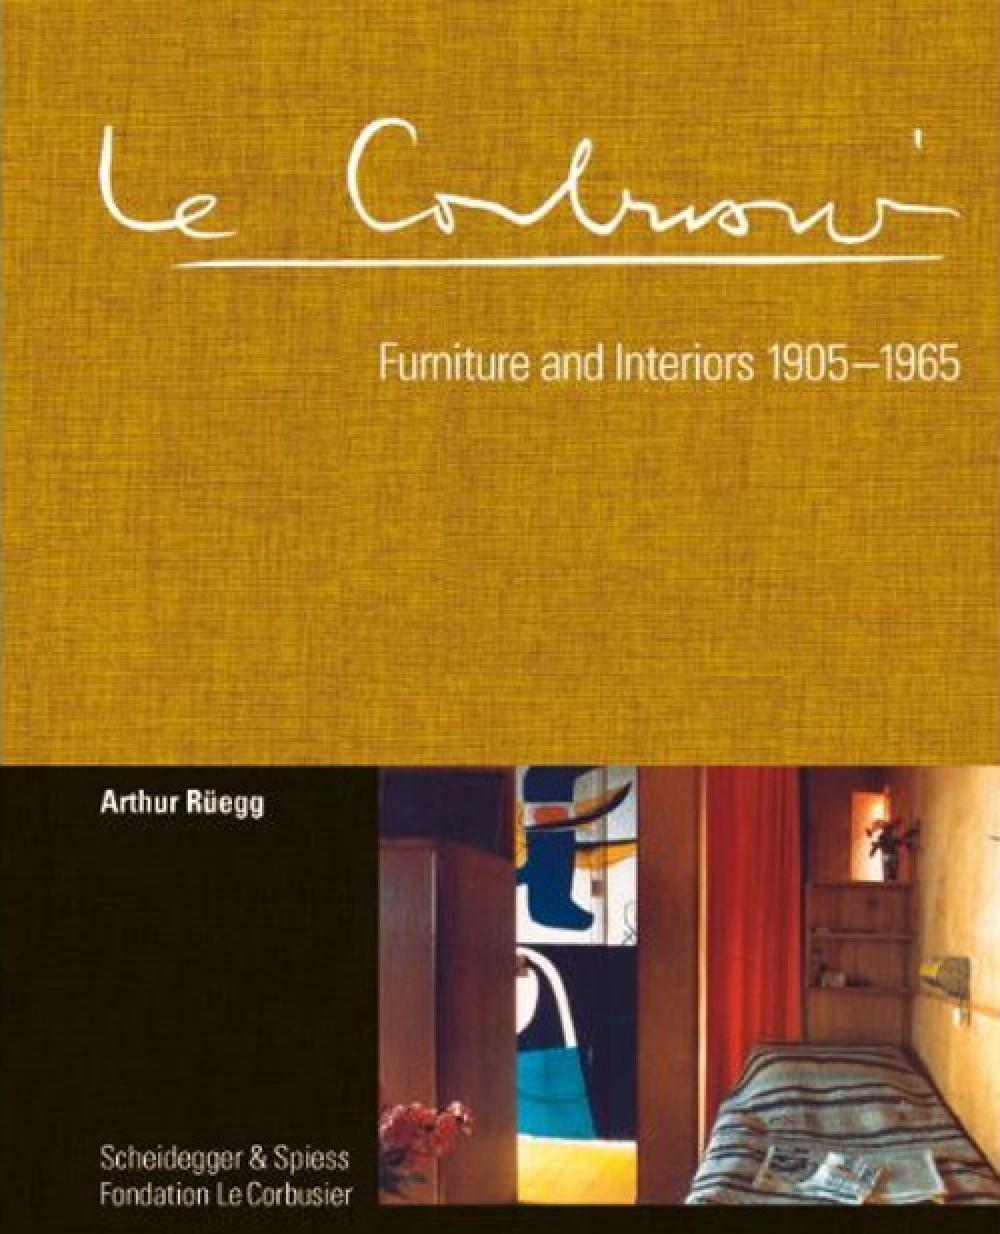 Le Corbusier Furniture and Interiors 1905-1965